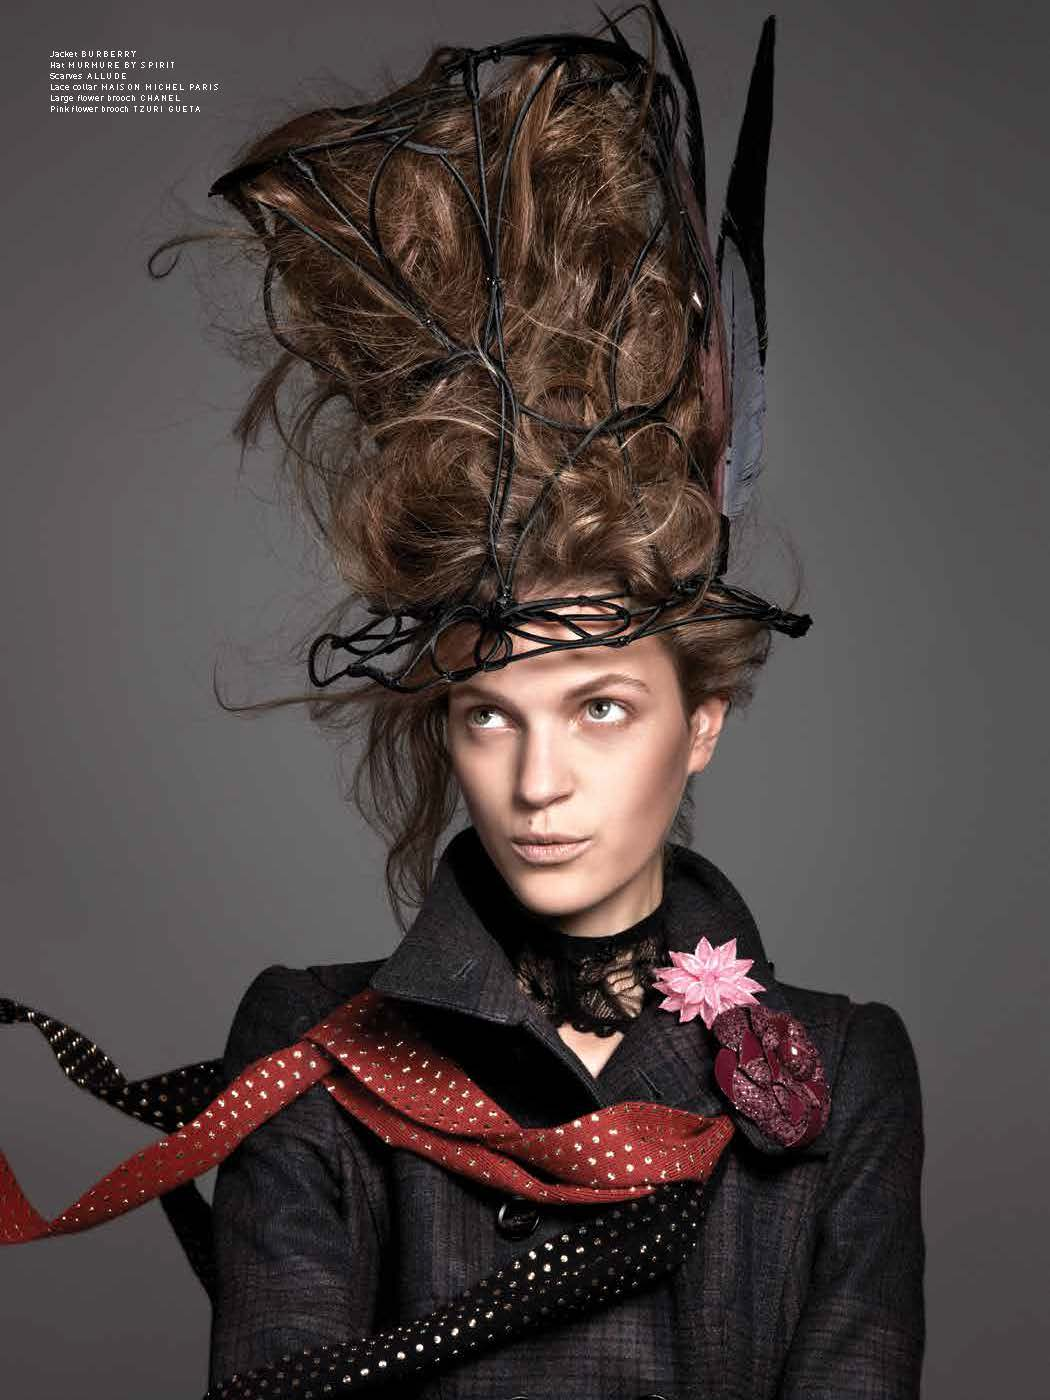 PulpMagda2 Magdalena Langrova Looks Mad as a Hatter for Pulp Magazine No. 6 by Ishi